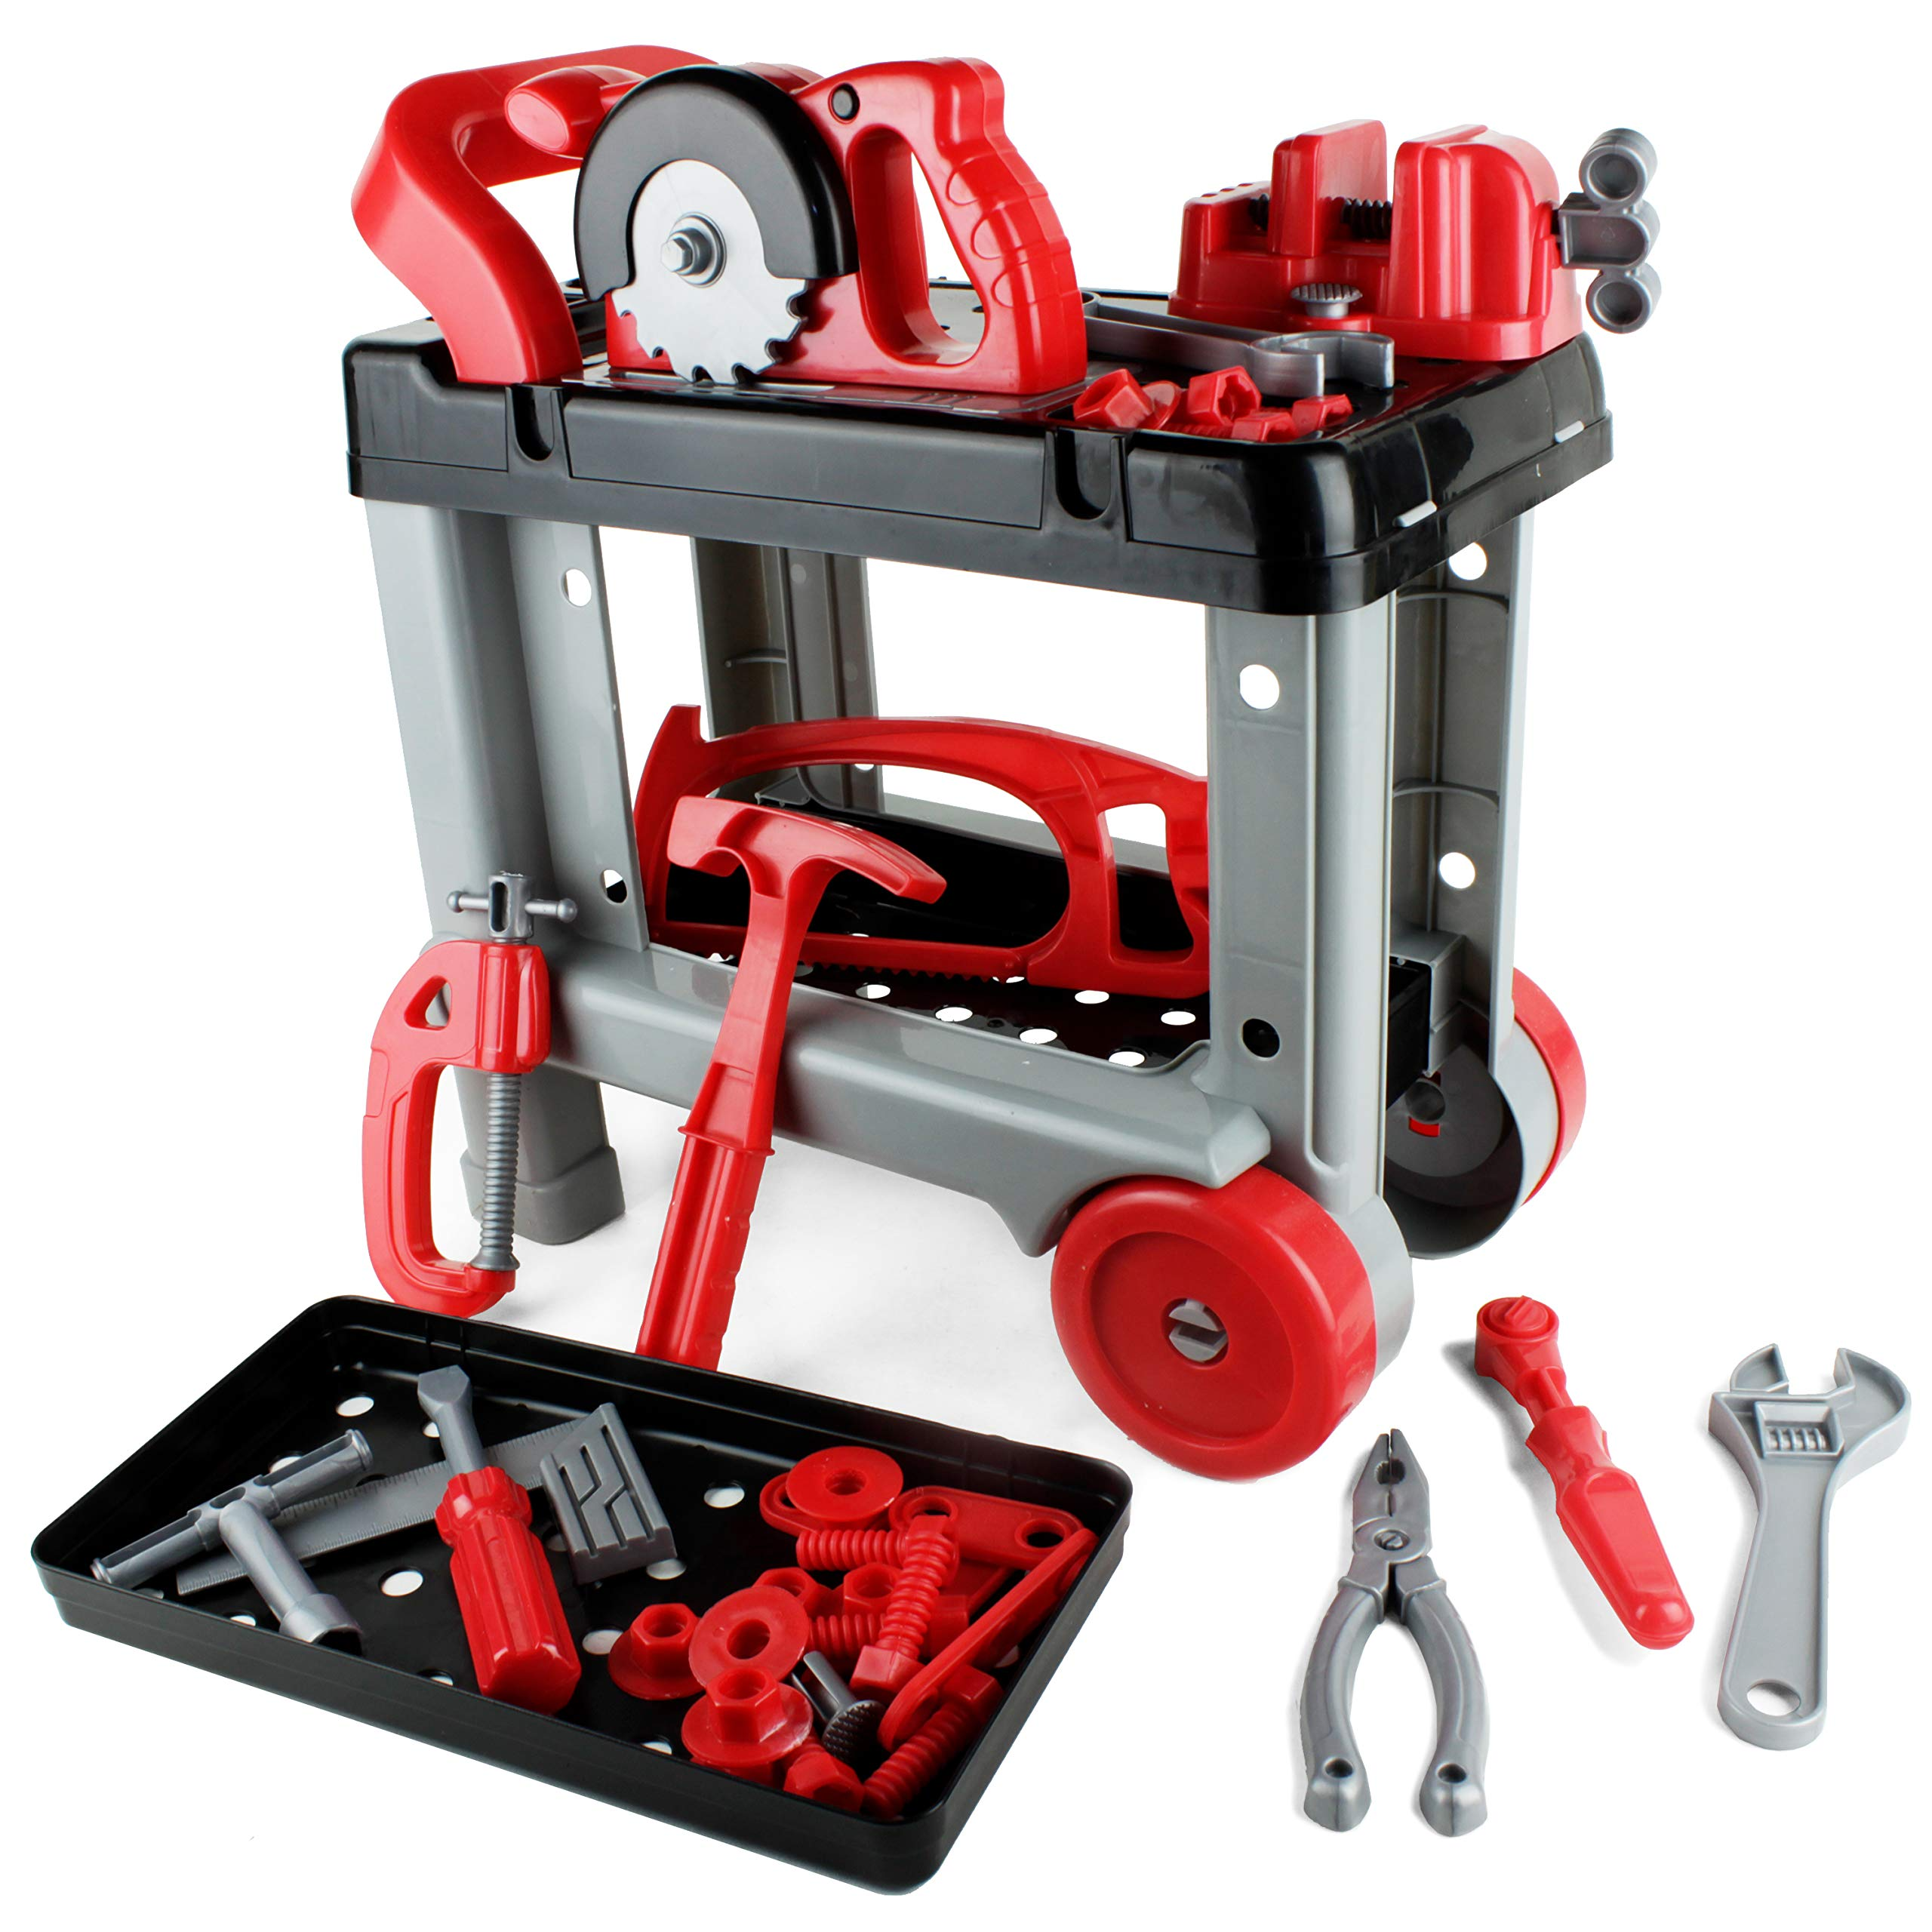 Boley Builders Rolling Tool Work Bench Construction Toy Set - Boys and Girls Pretend Play Set Includes Hammers, Wrenches, Power Saws, and More - Imaginative Fun for Toddler Education